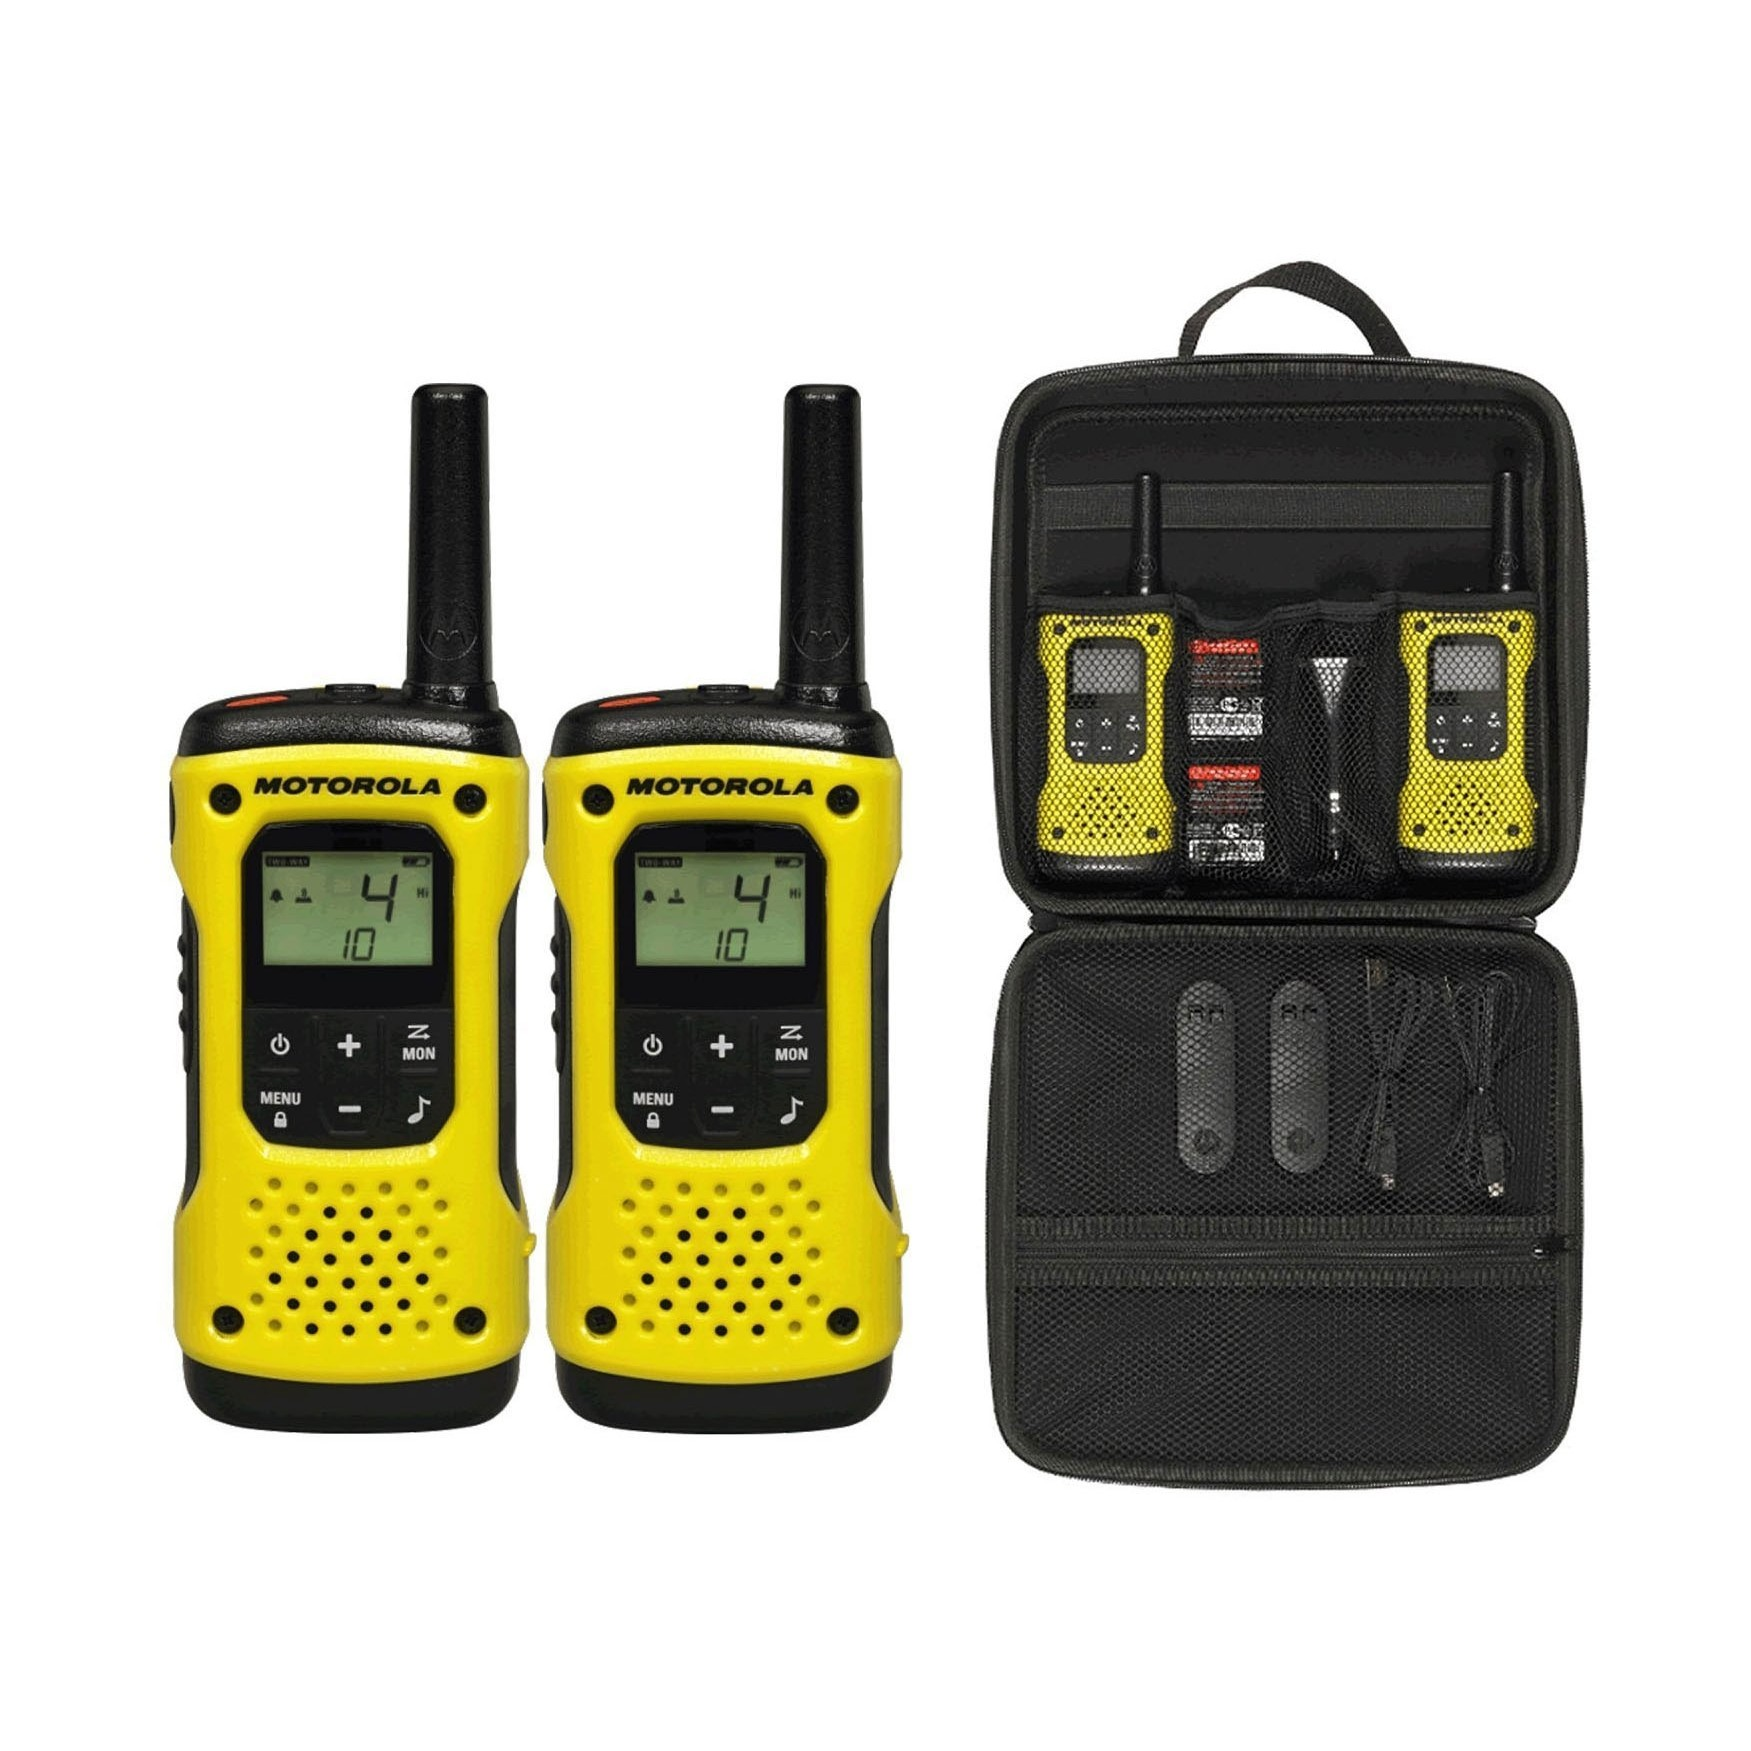 Waterproof Motorola Radios further Jd Track Adjusters Gseries furthermore Watch as well Zetor Wiring Diagram Html furthermore Hydraulic Elevator Wiring Diagram. on long tractor wiring diagram